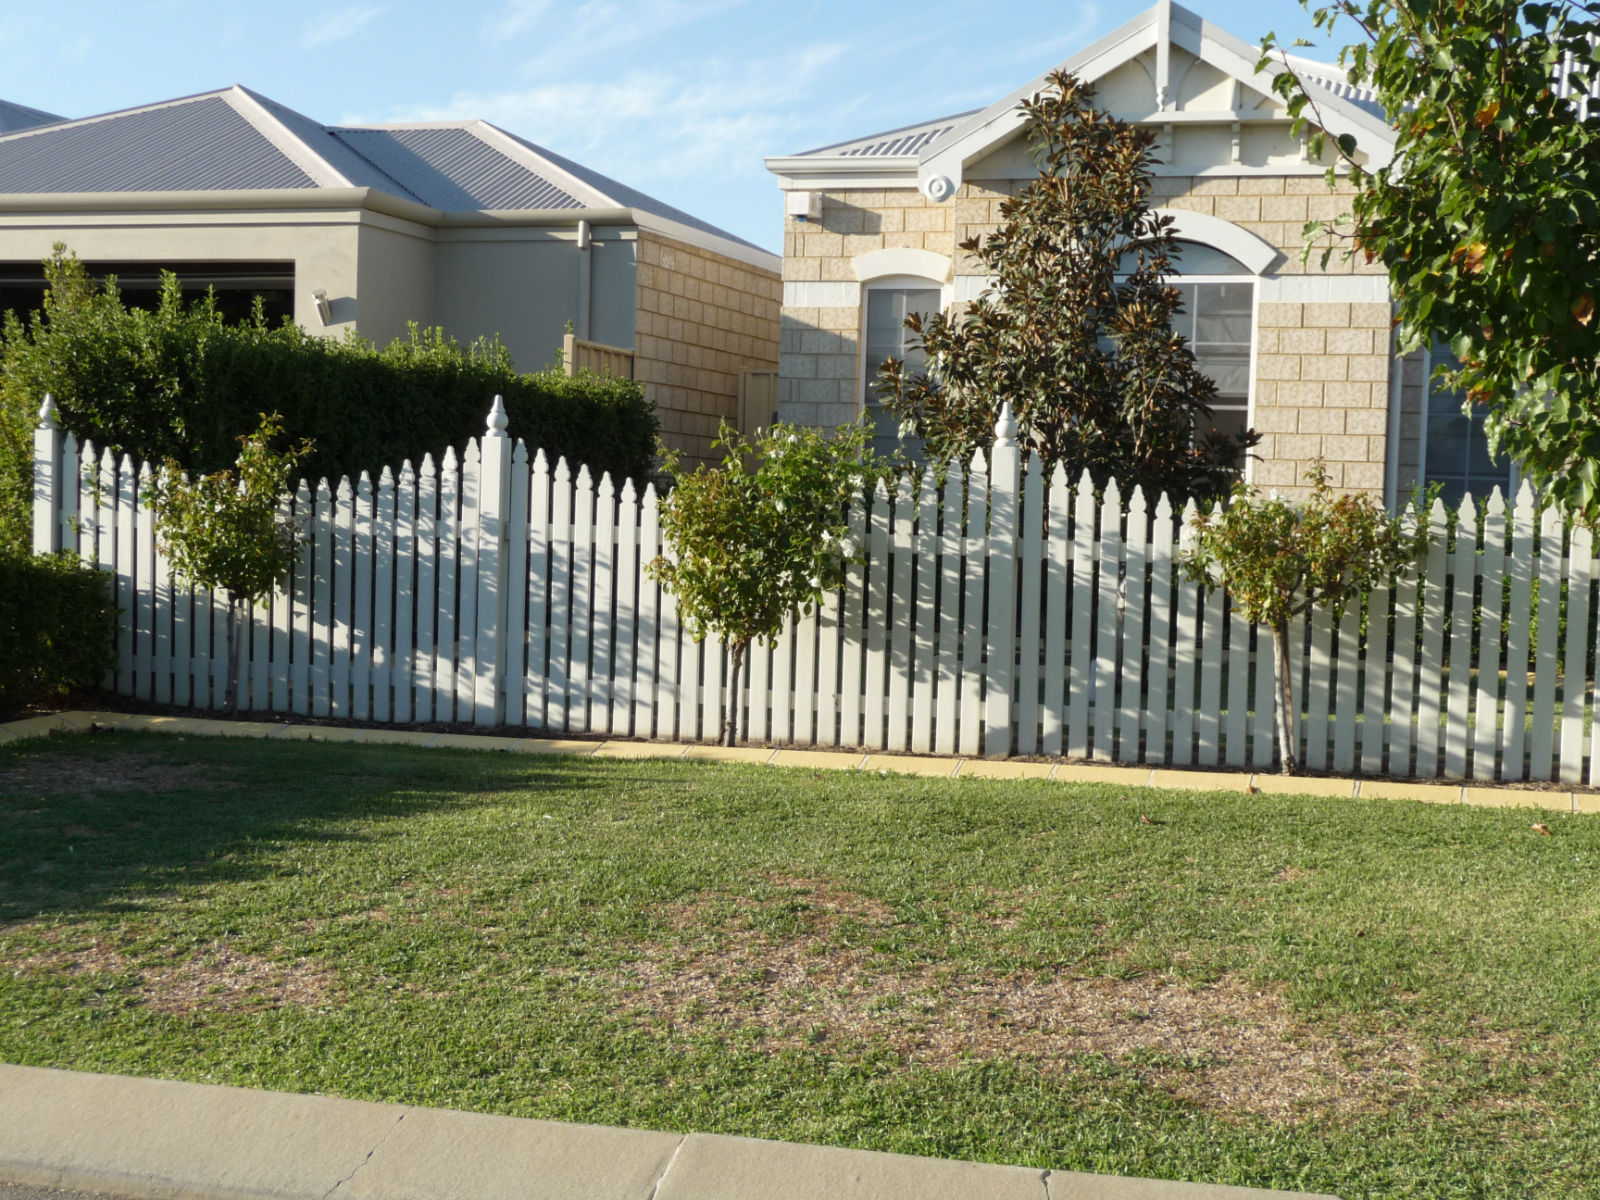 picket fencing perth home handyman servicesperth home handyman services. Black Bedroom Furniture Sets. Home Design Ideas